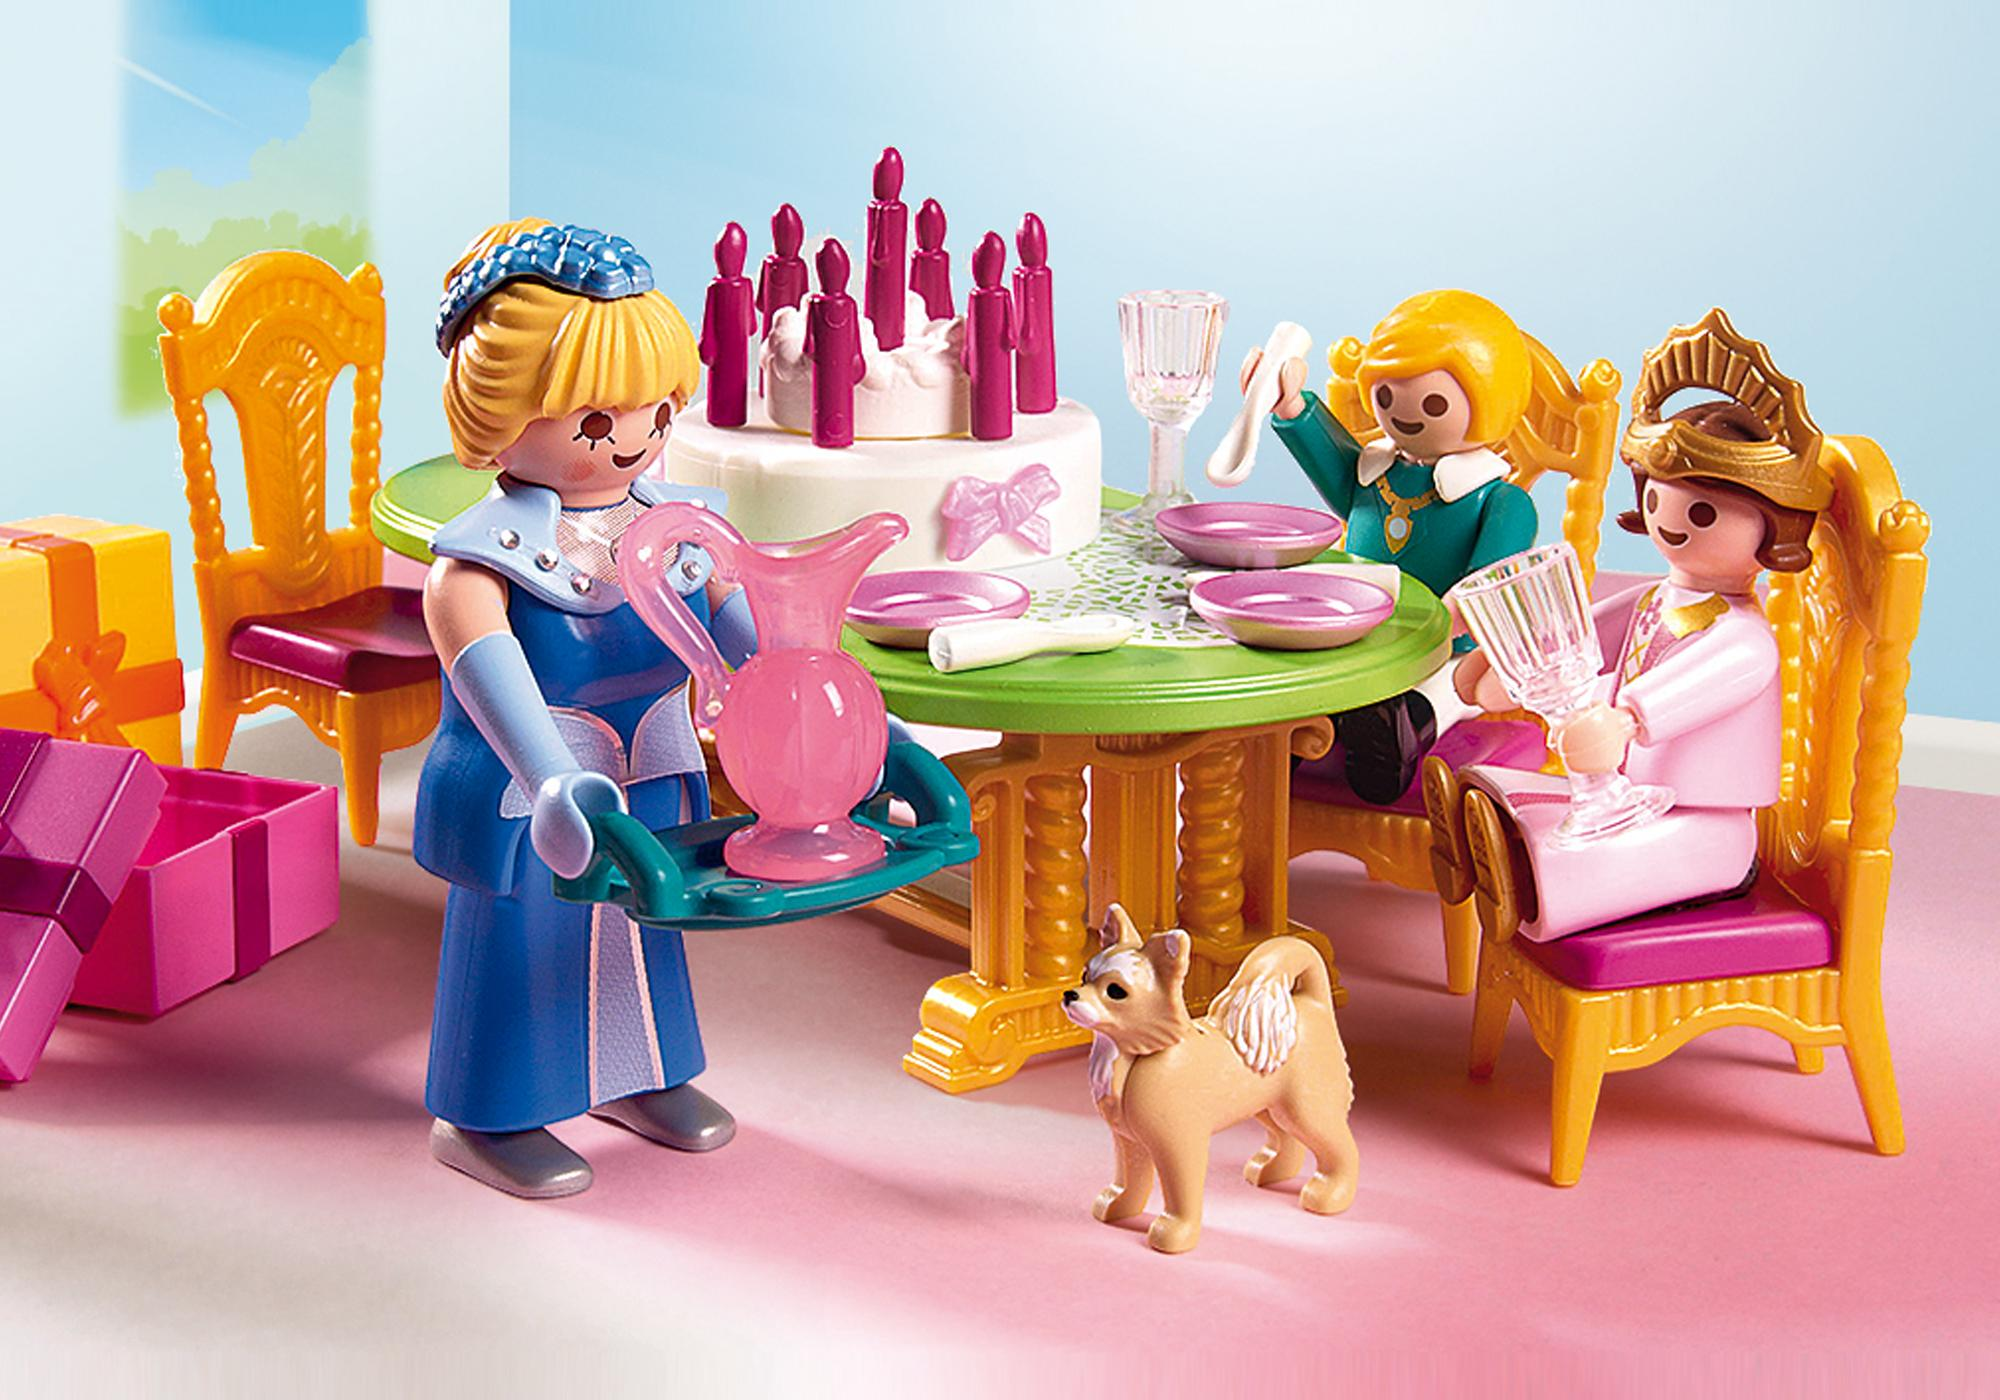 http://media.playmobil.com/i/playmobil/6854_product_extra1